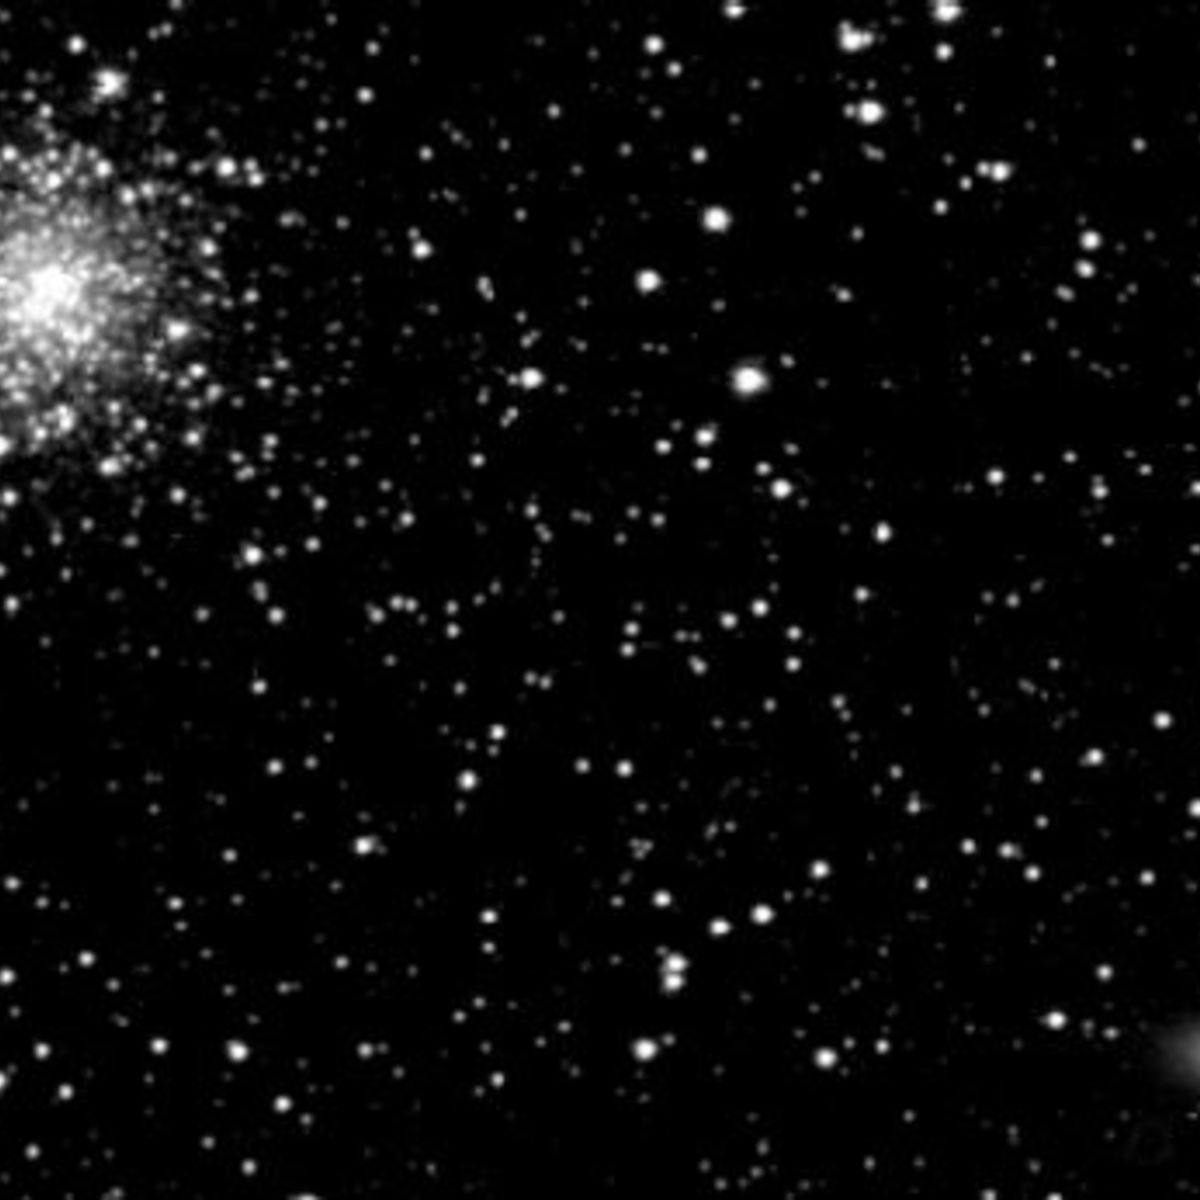 rosetta_comet_globular.jpg.CROP.rectangle-large.jpg